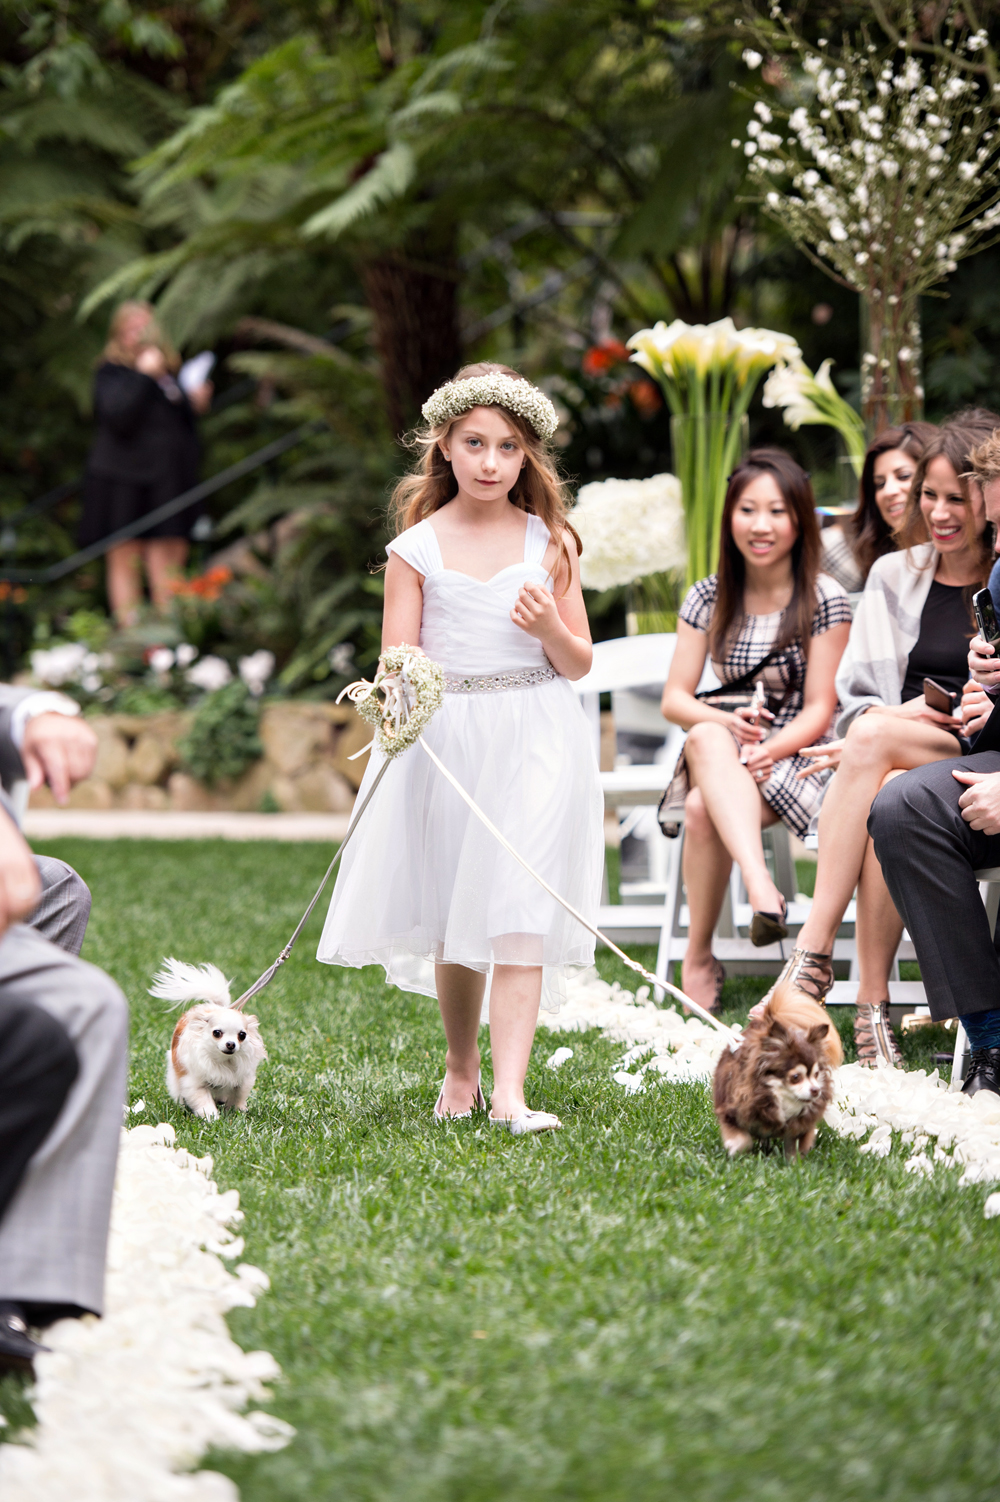 Flower girl walking two dogs down the aisle wedding ceremony